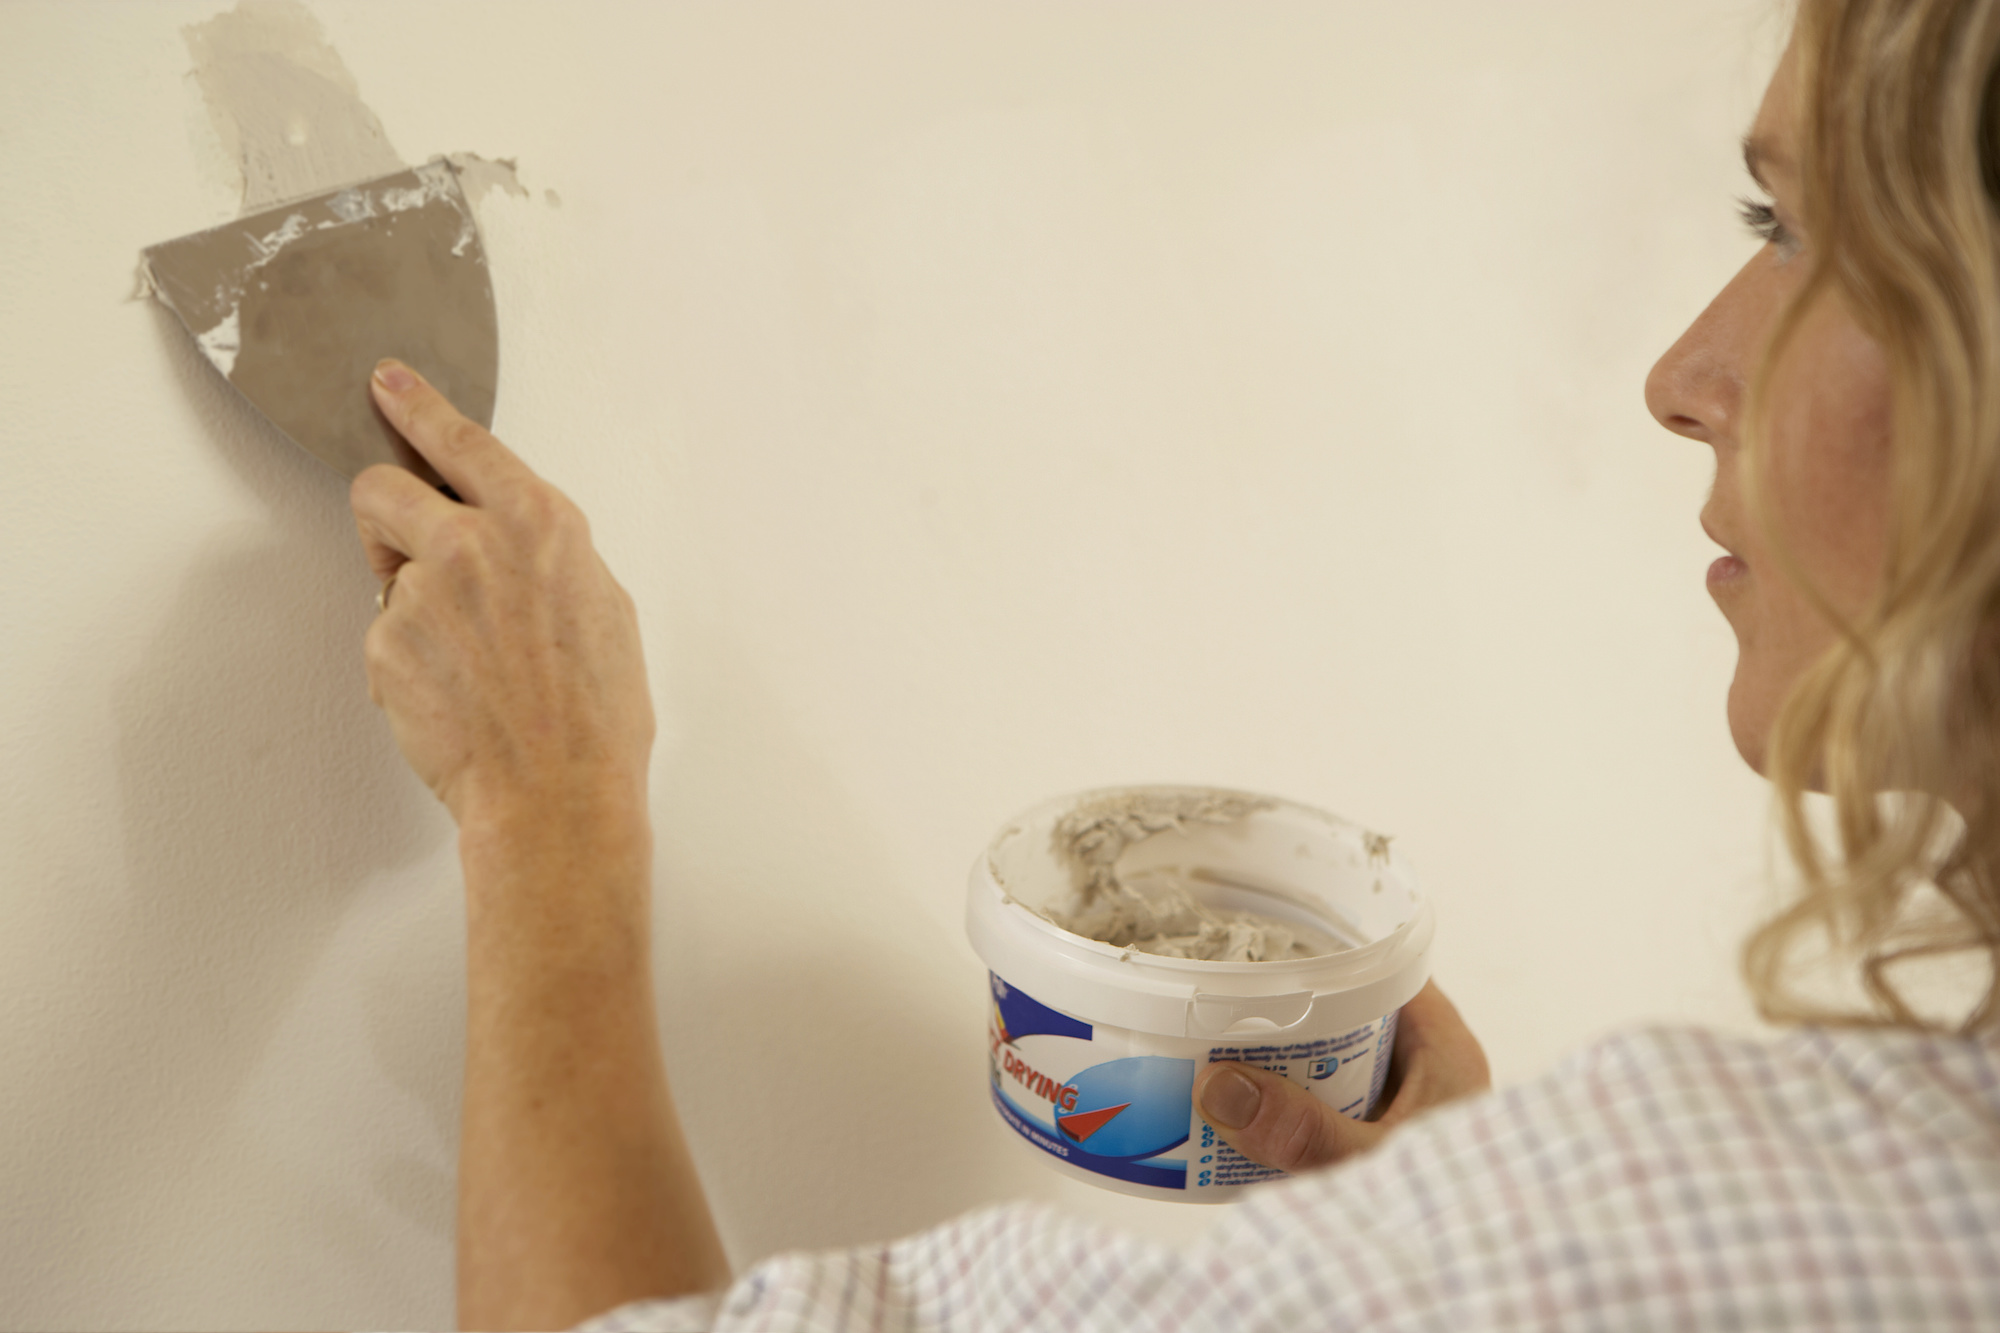 How to Prep Walls for Painting, Spackle